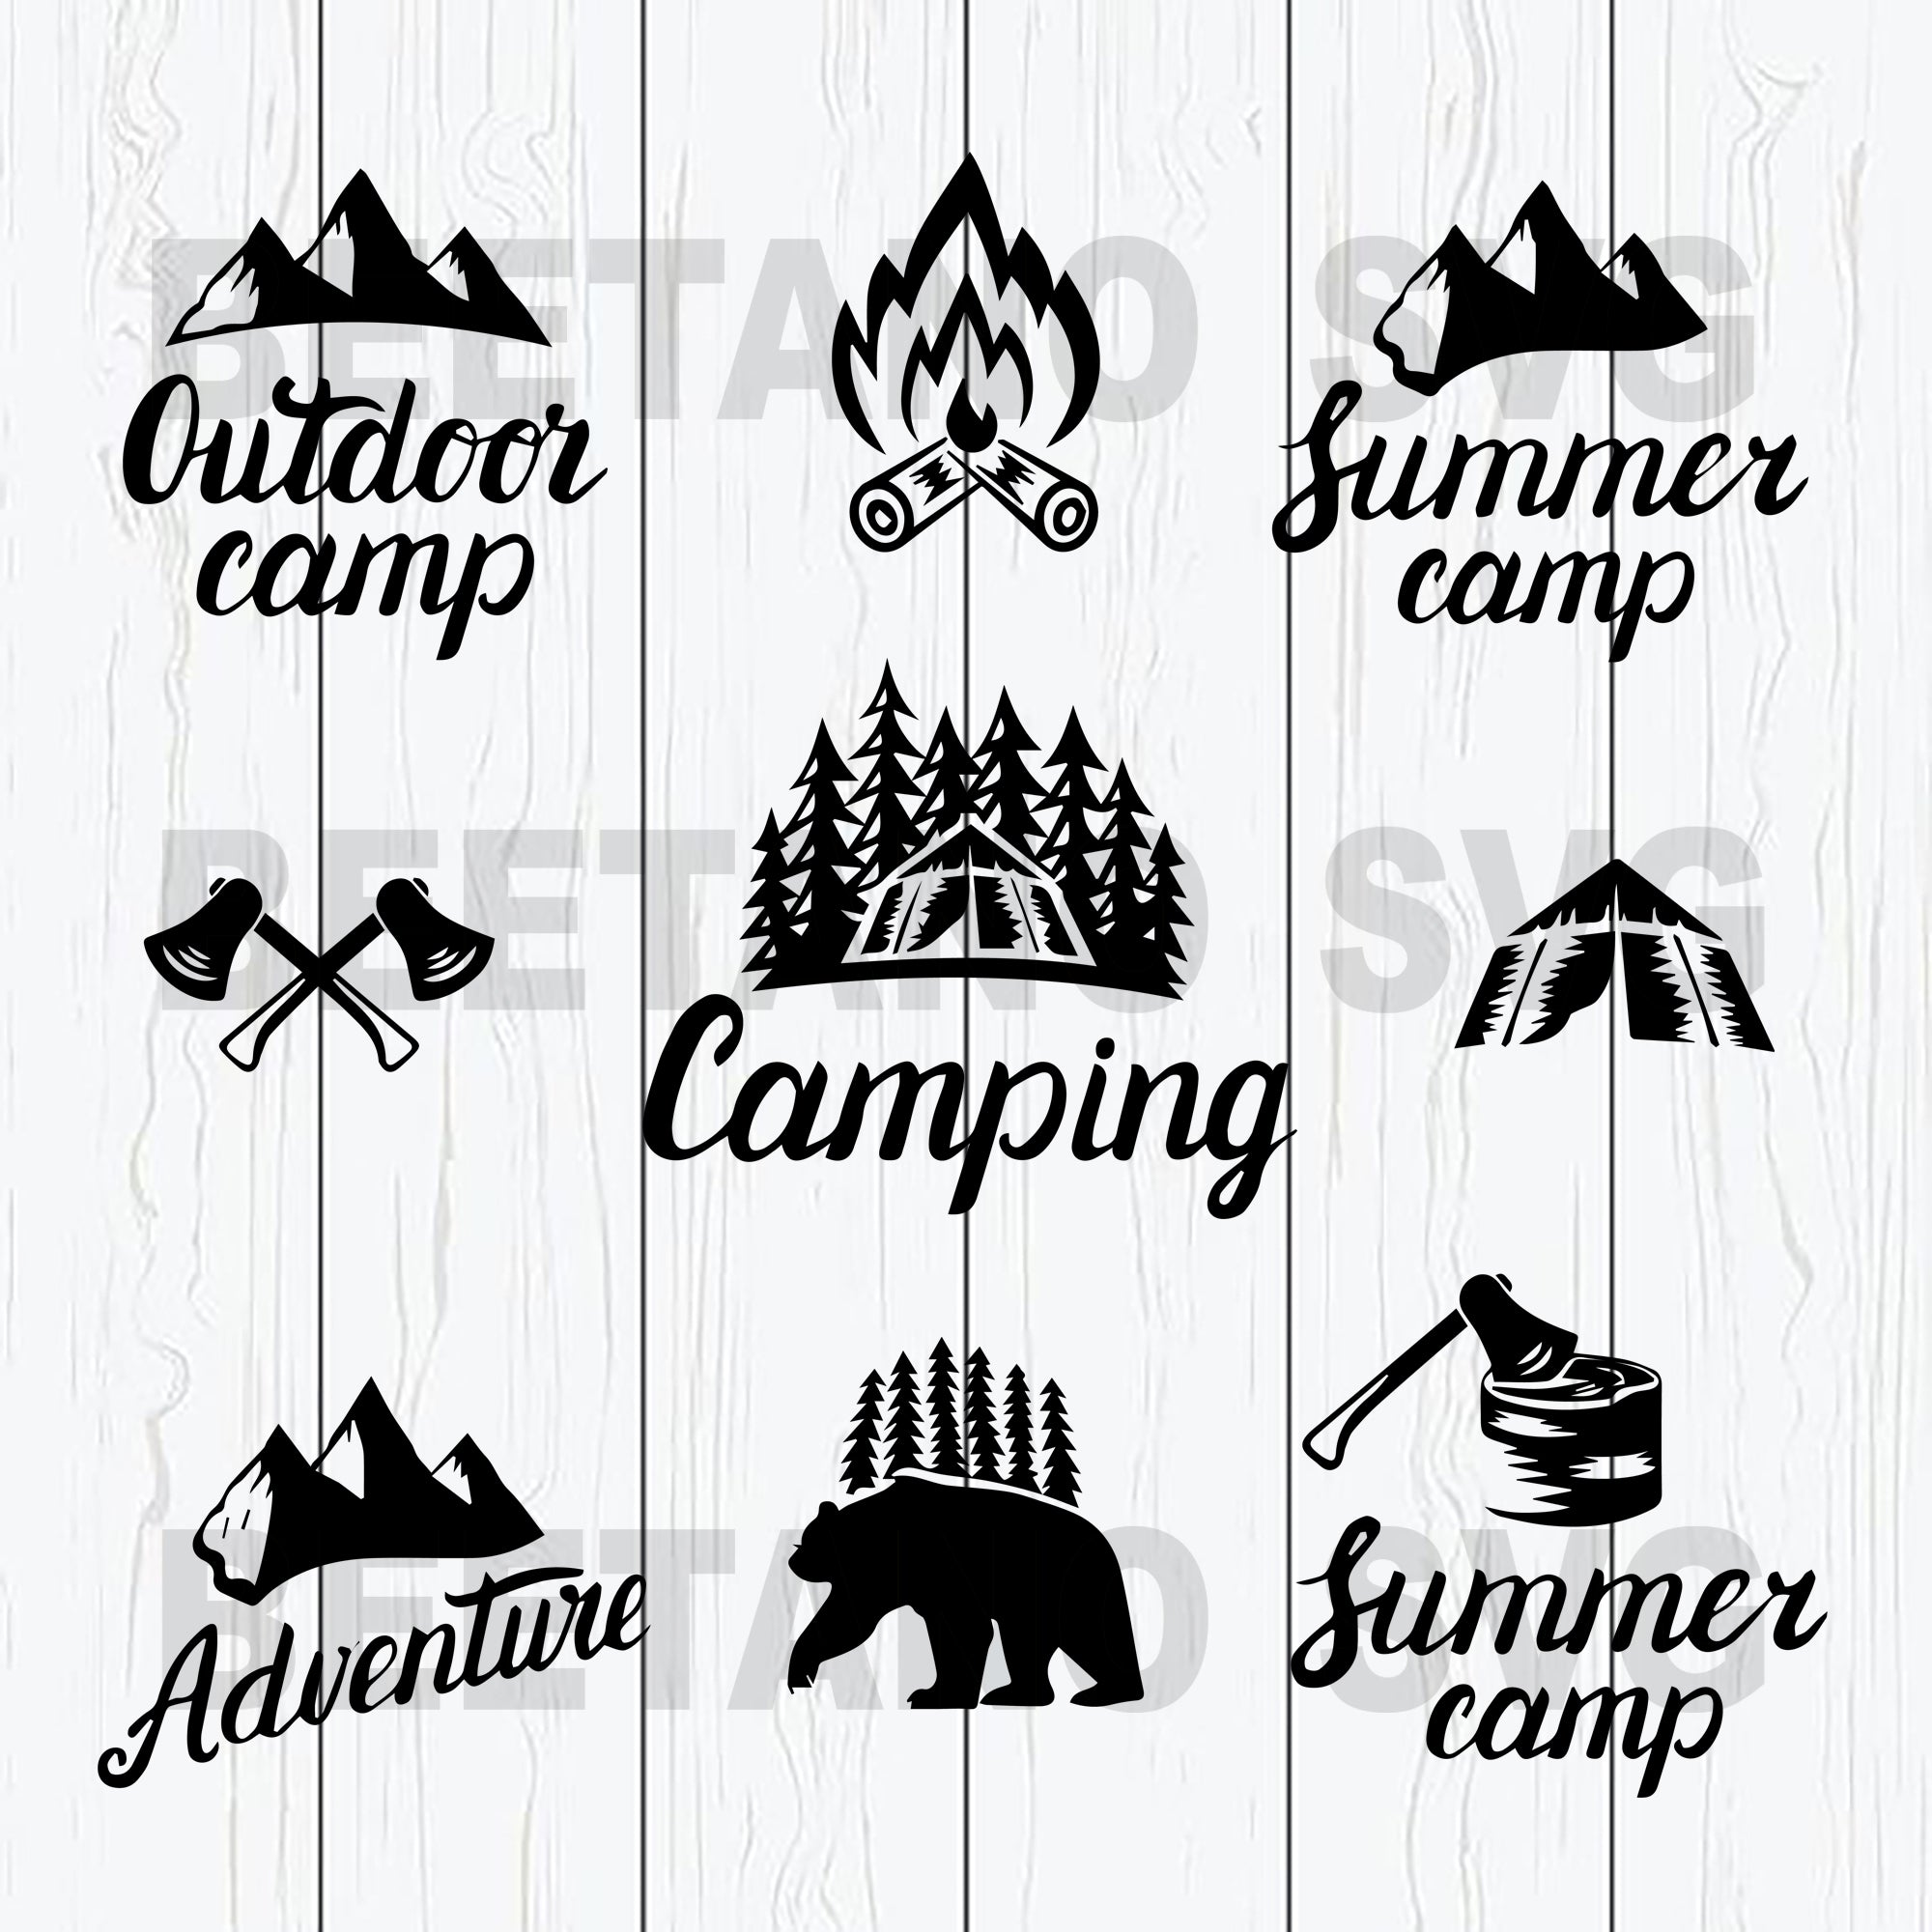 Summer Camping Life Svg Bundle, Camping Svg, Camp Life Svg File, Outdoor Camp Svg